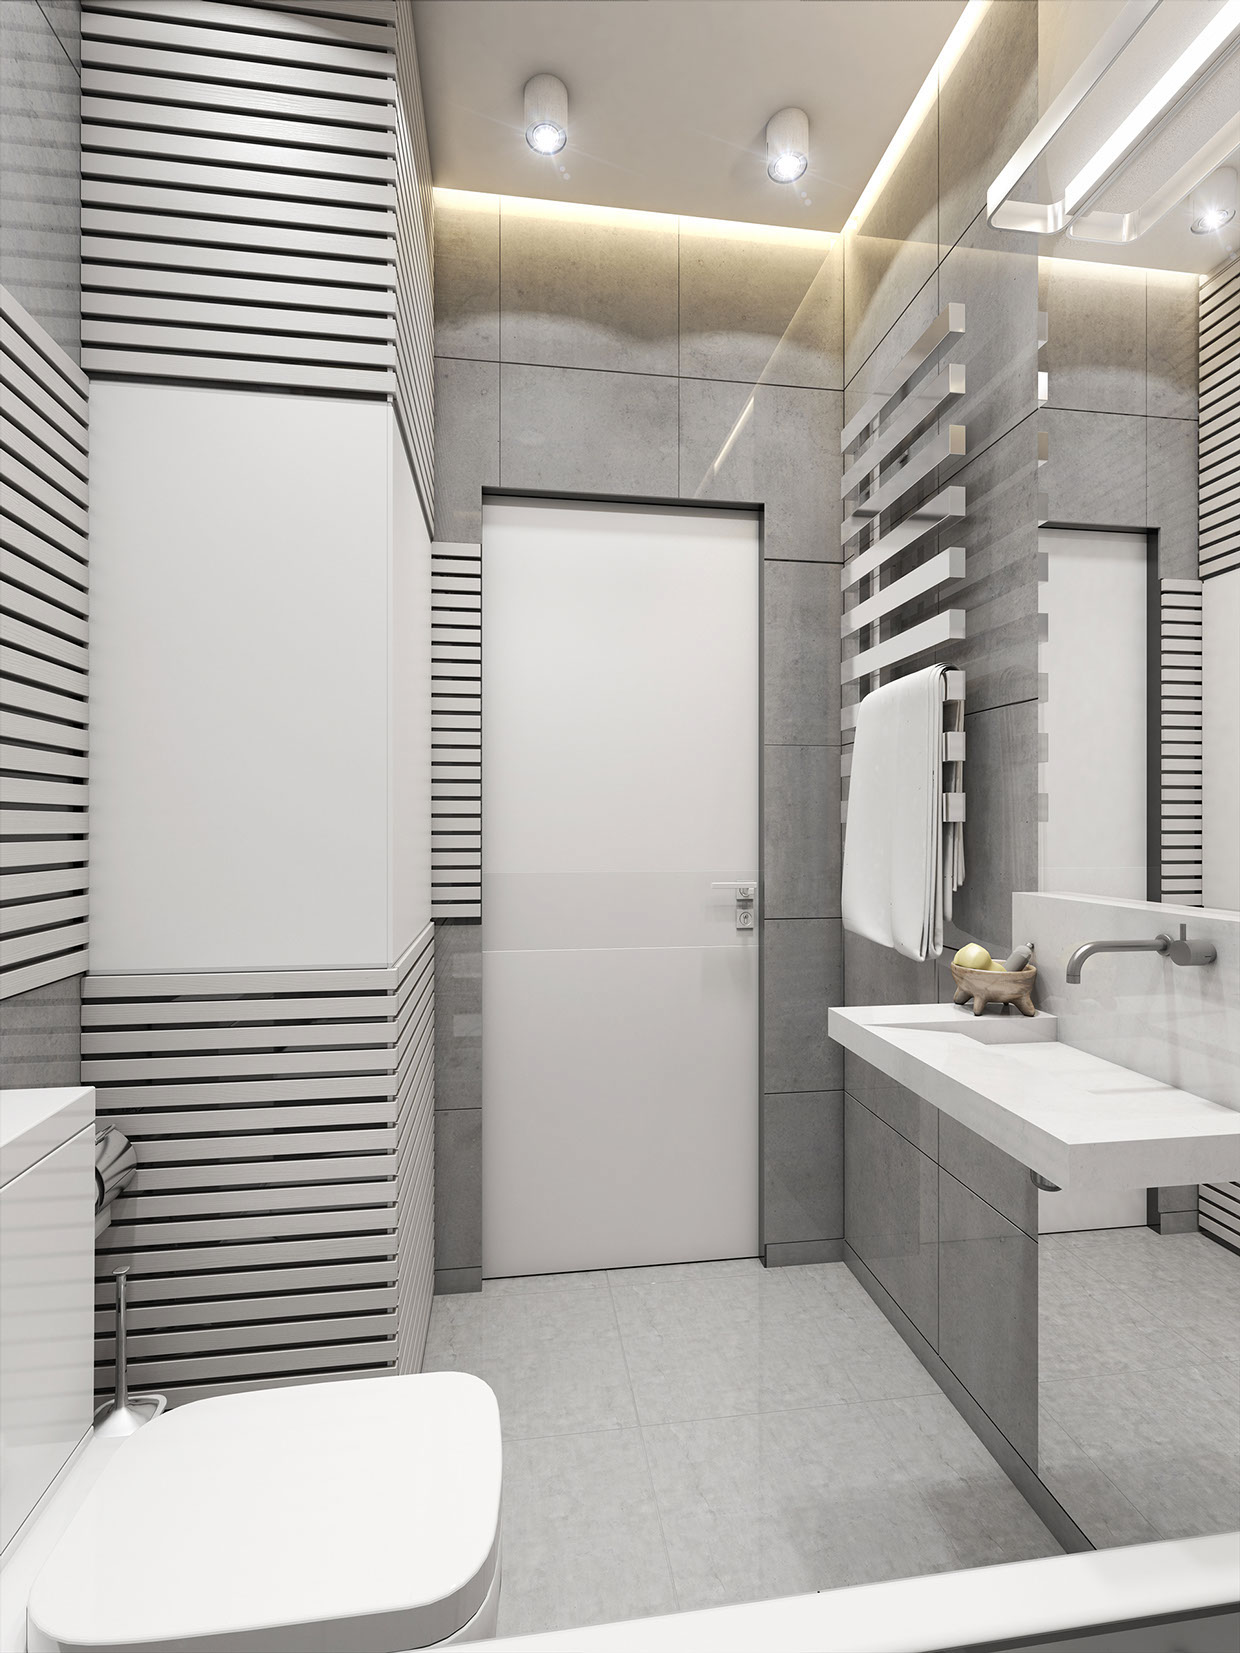 Gray Bathroom Decor - 3 super small homes with floor area under 400 square feet 40 square meter